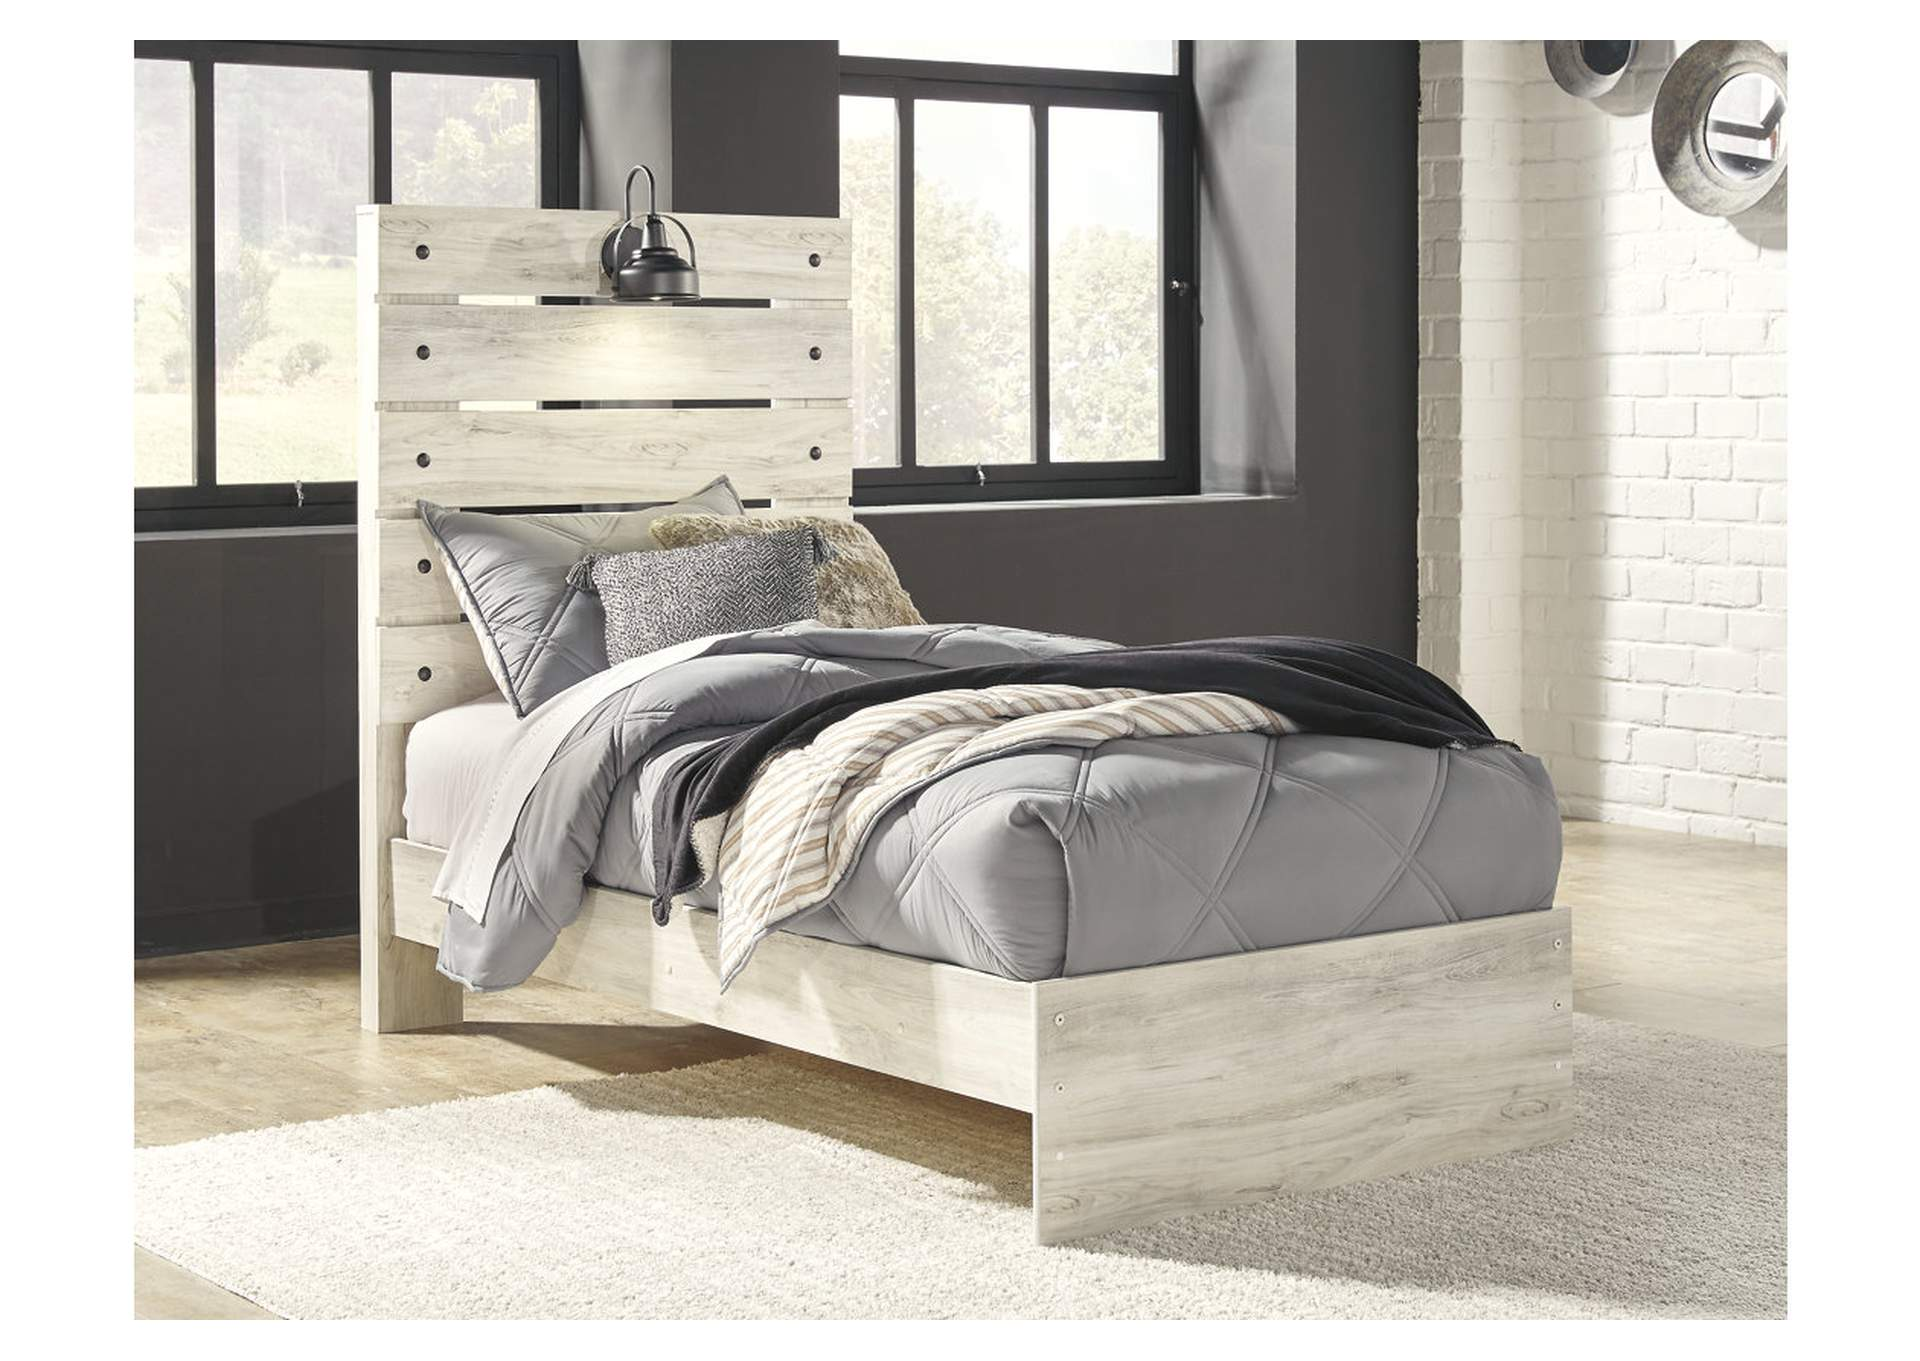 Cambeck Twin Panel Bed,Signature Design By Ashley